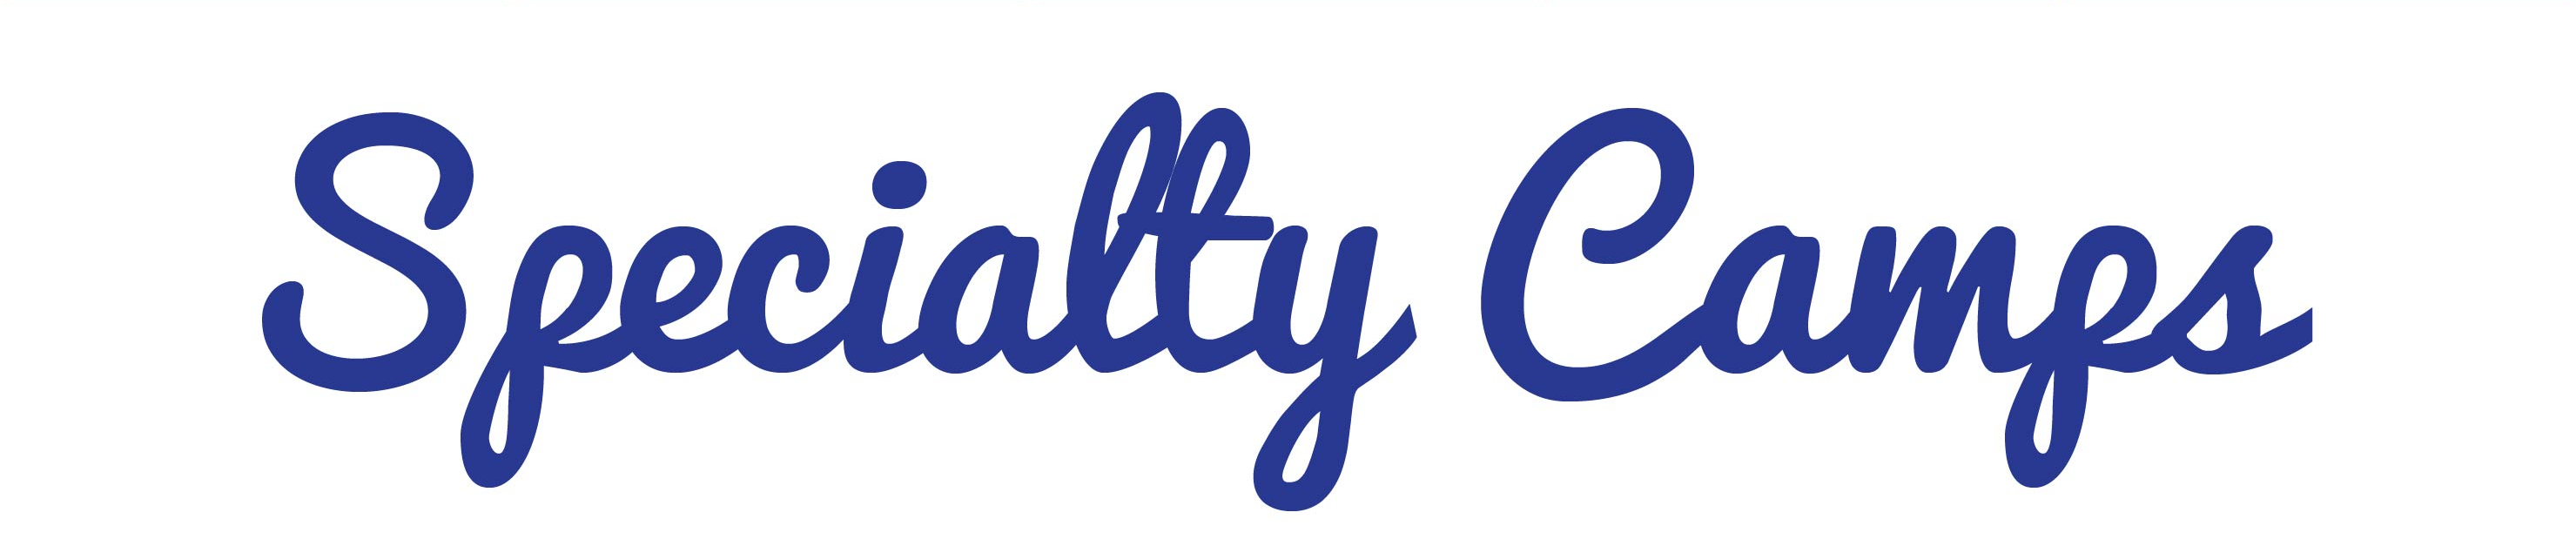 Specialty Camps header image